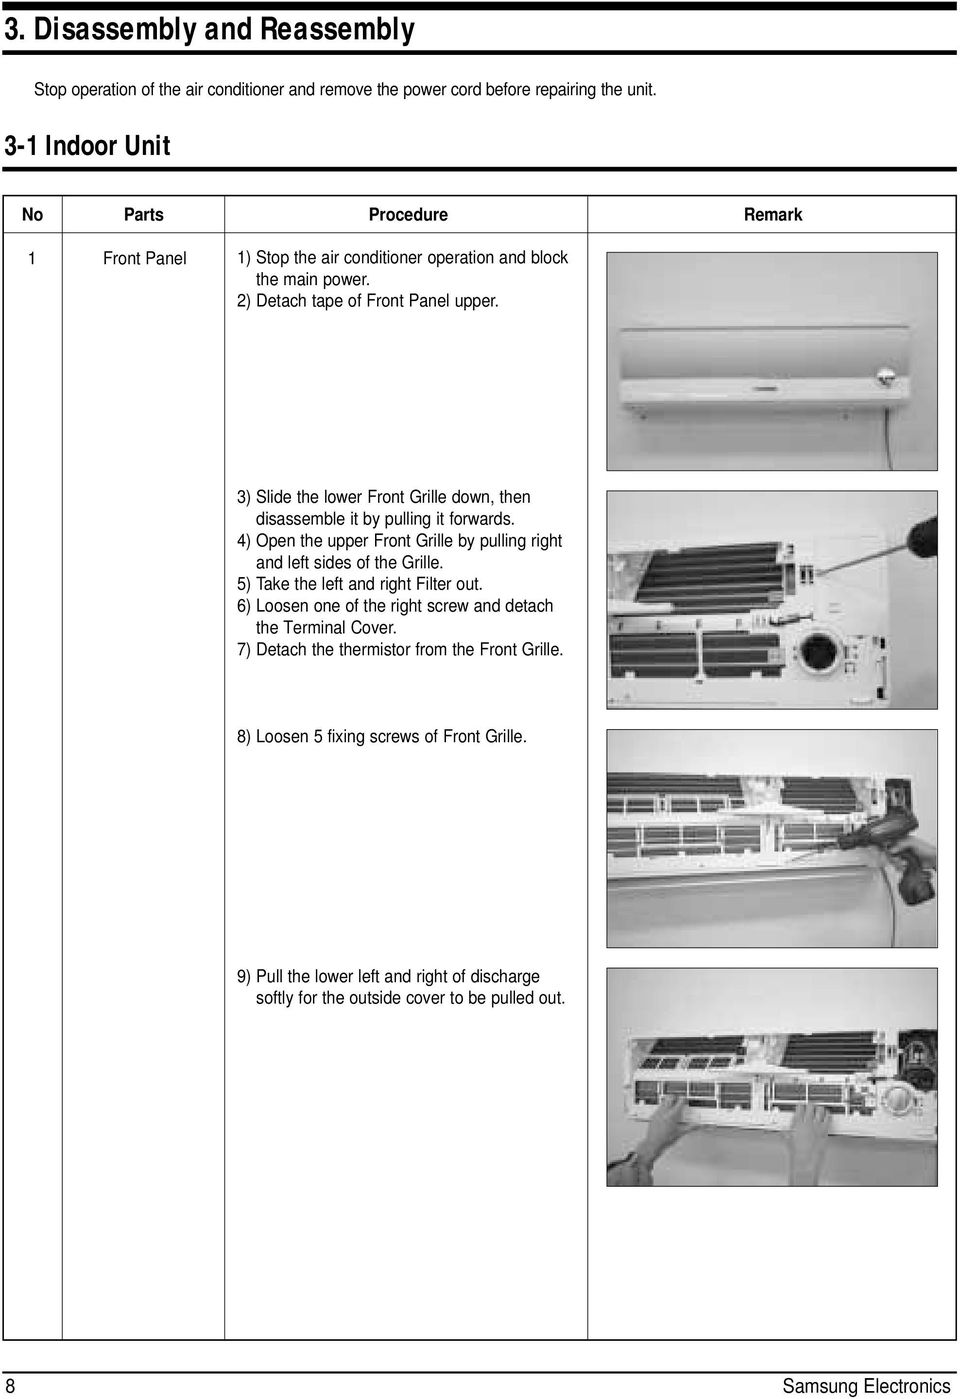 Service Manual Air Conditioner Indoor Unit Sh09bpd Sh12bpd Outdoor Zanussi Washing Machine Wiring Diagram Error Code 3 Slide The Lower Front Grille Down Then Disassemble It By Pulling Forwards